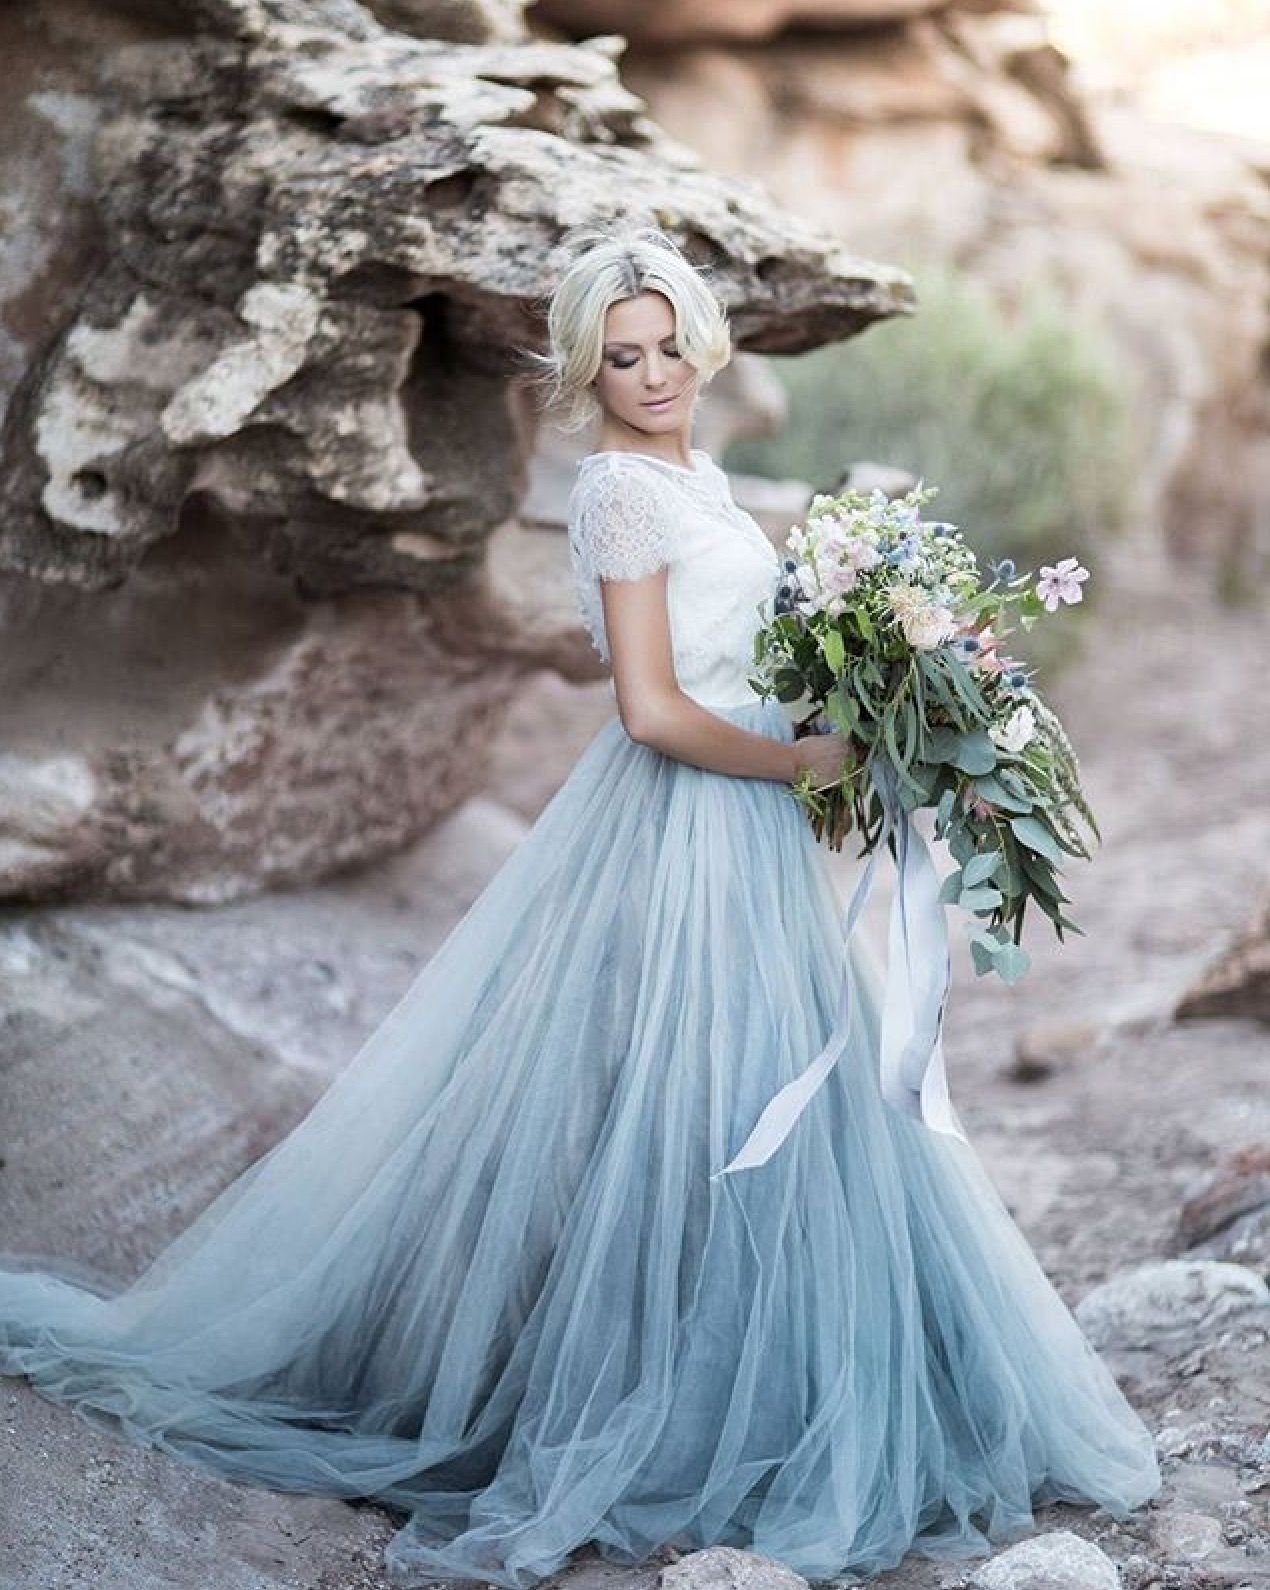 I just LOVE this look ! Makes it do romantic and feminine ...